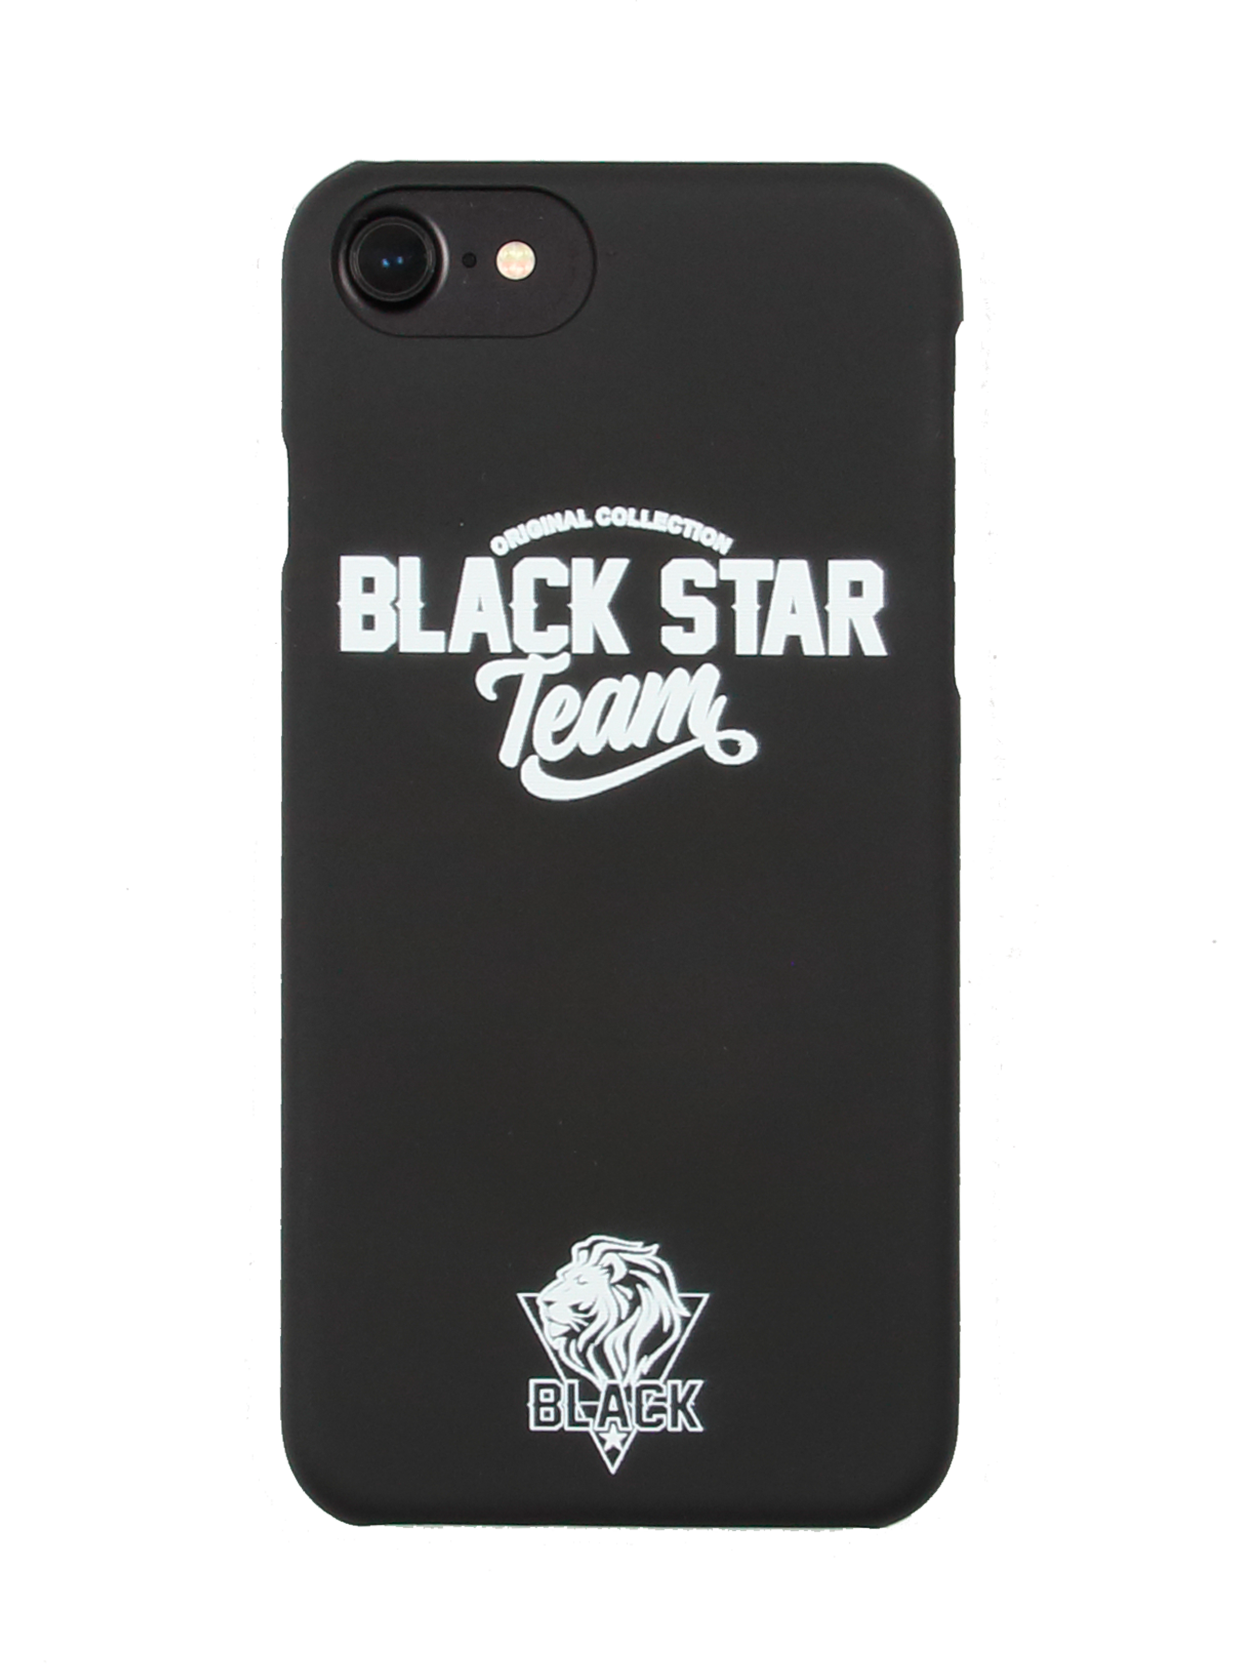 PHONE CASE TEAMPhone plastic hard case by Black Star Wear. Black mat case printed wih white Black Star Team lettering. Solid protection and direct access to all device features.<br><br>size: 7<br>color: Black<br>gender: unisex